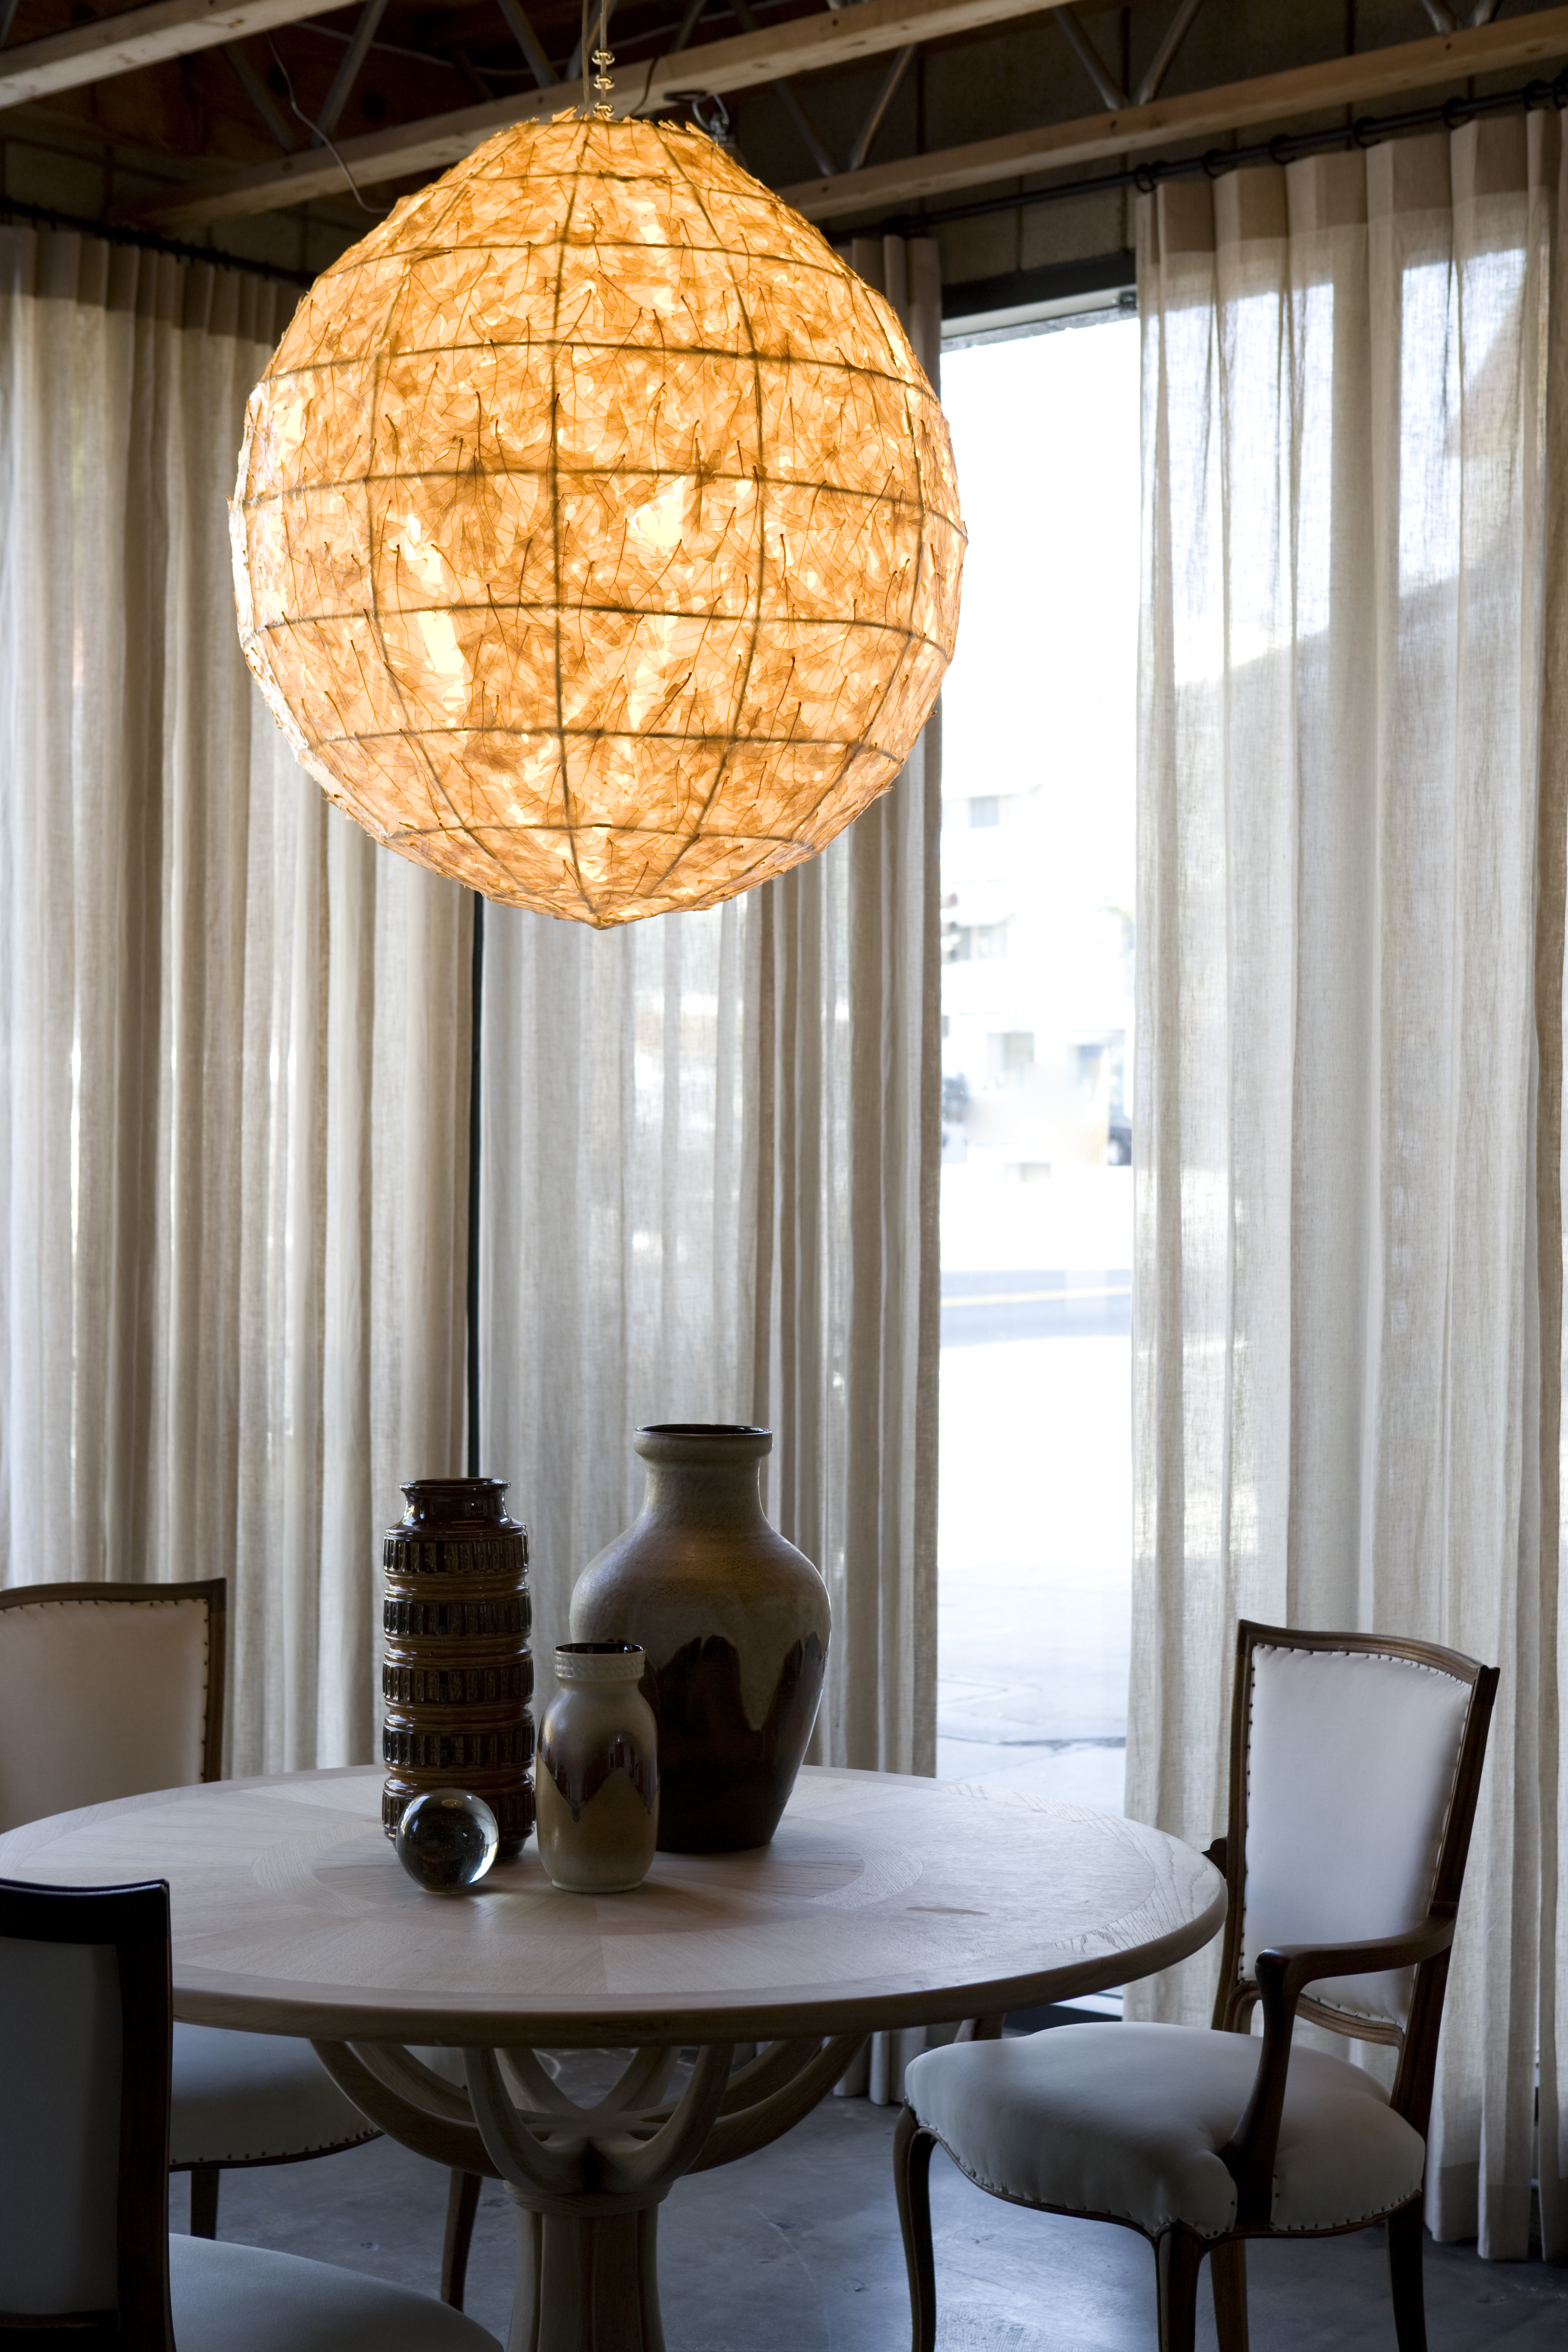 Large Swag Pendant Lamps Decor (Image 11 of 13)